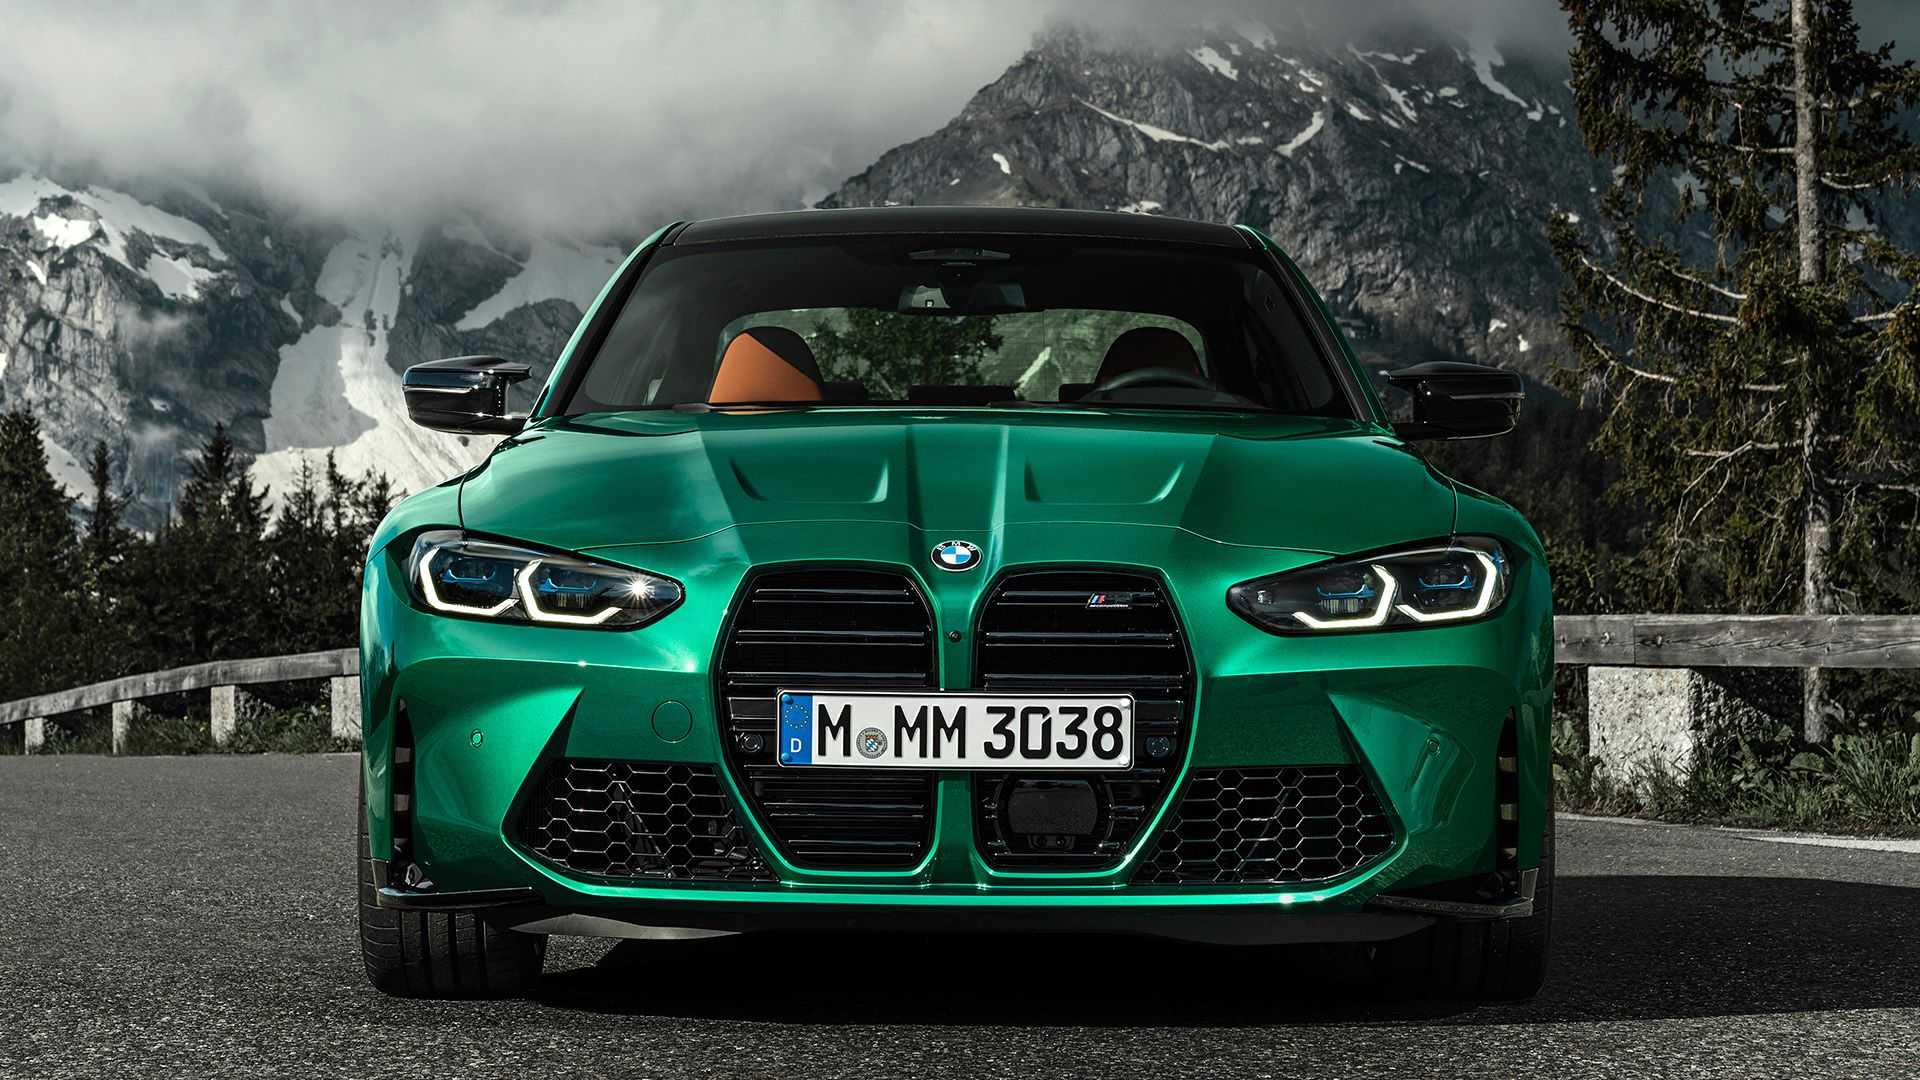 BMW Shows What's Hiding Behind Its Mighty New Grille